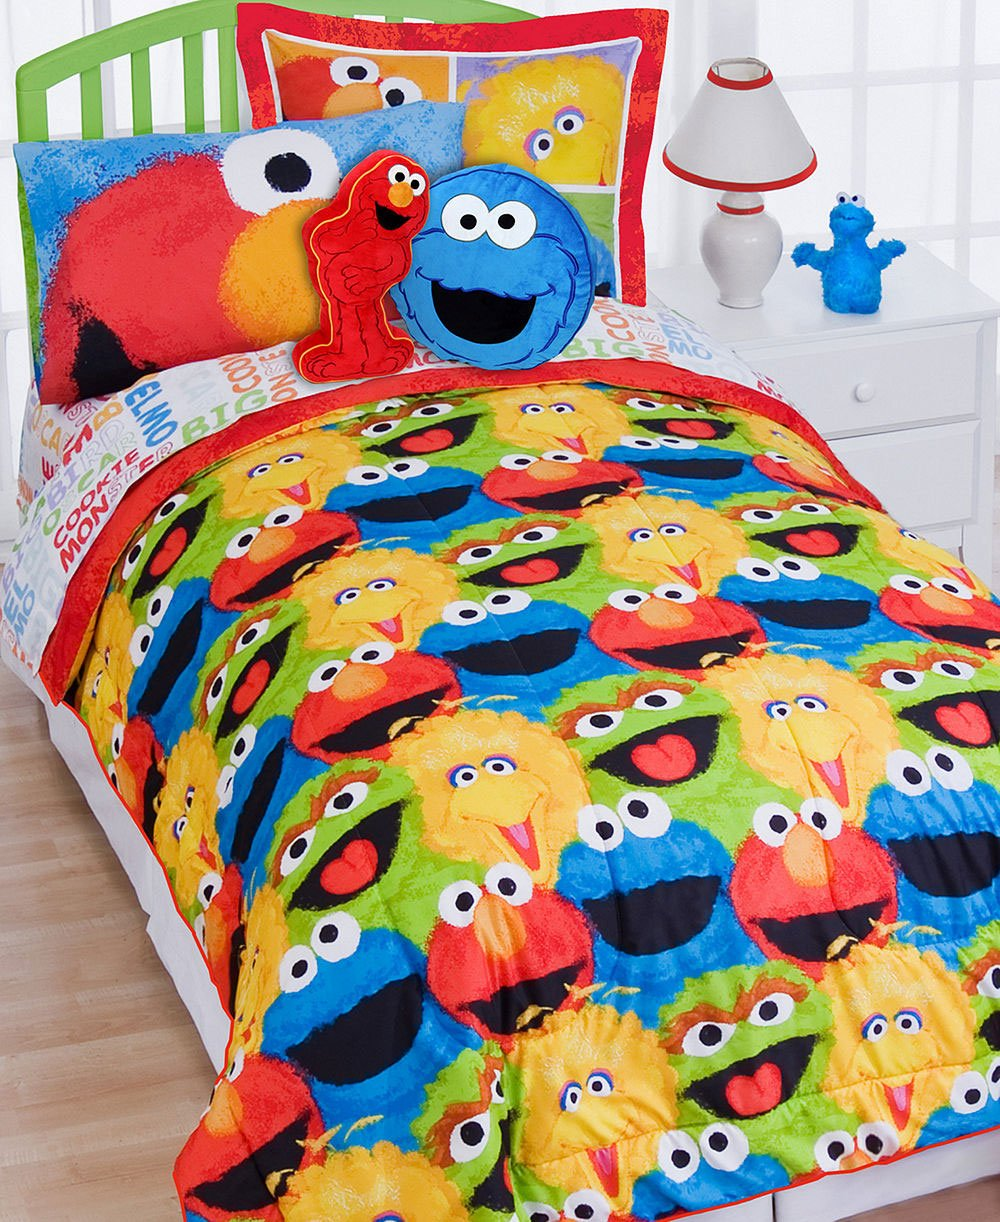 Elmo Sheets Twin Elmo Twin Bed-in-a-bag Set